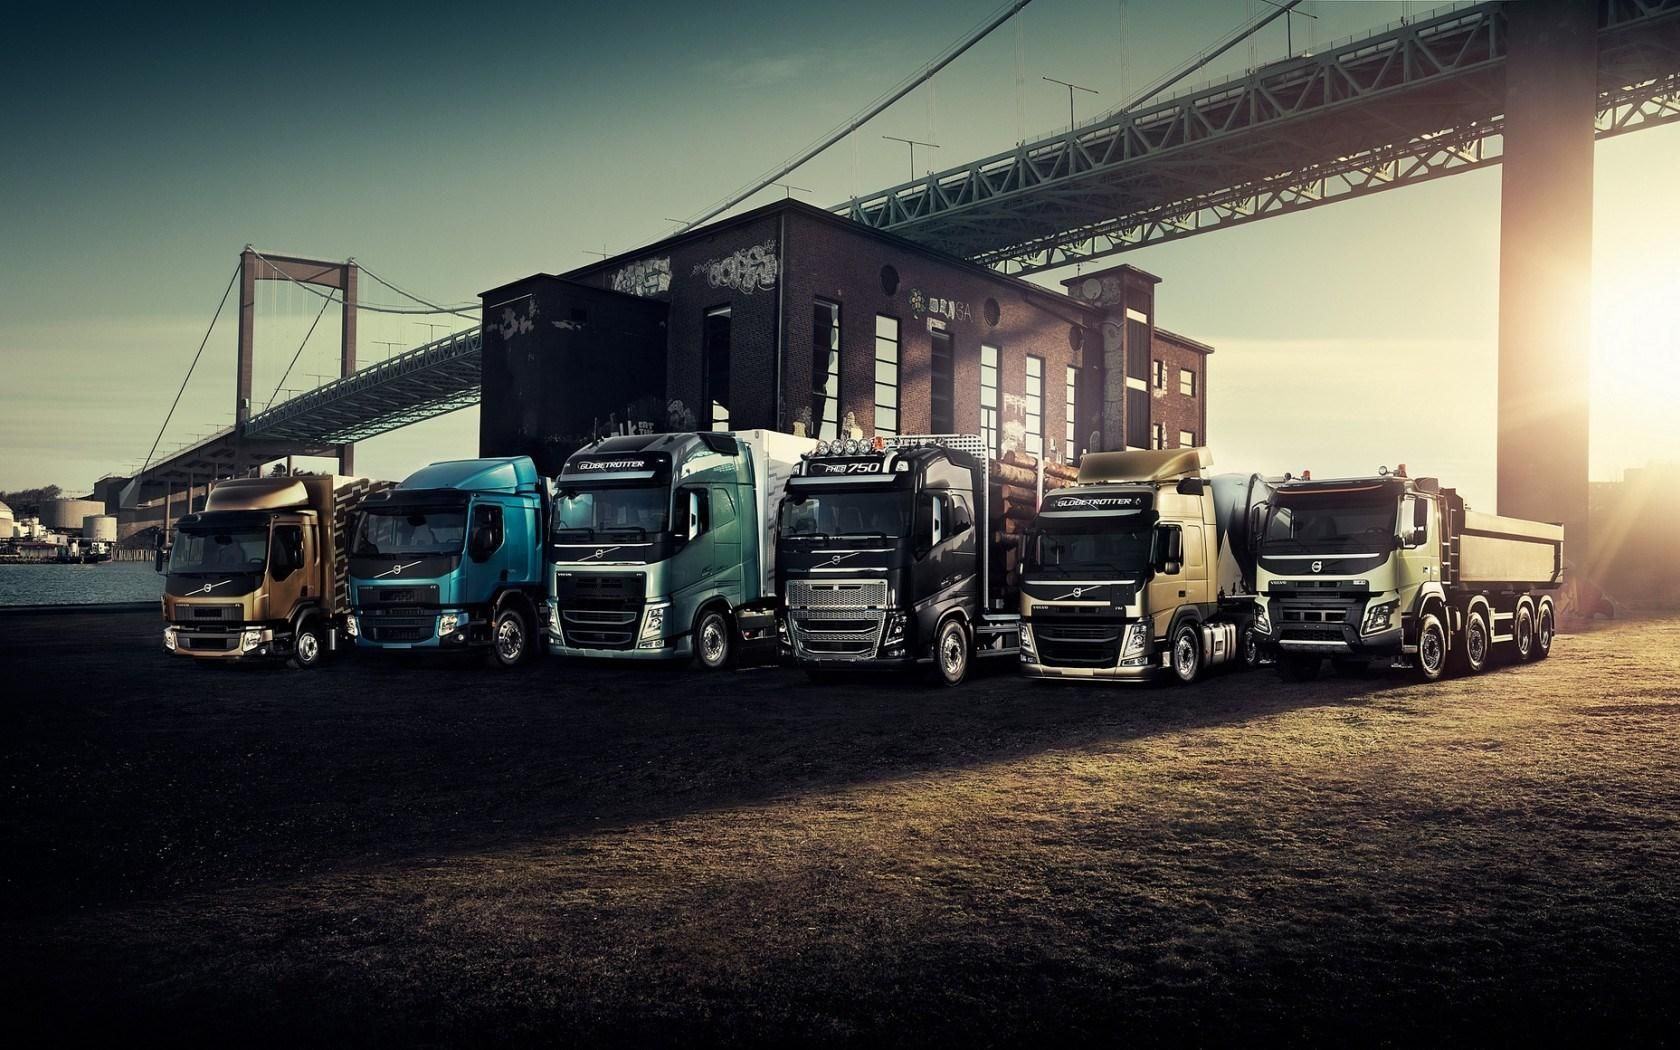 truck on road wallpapers